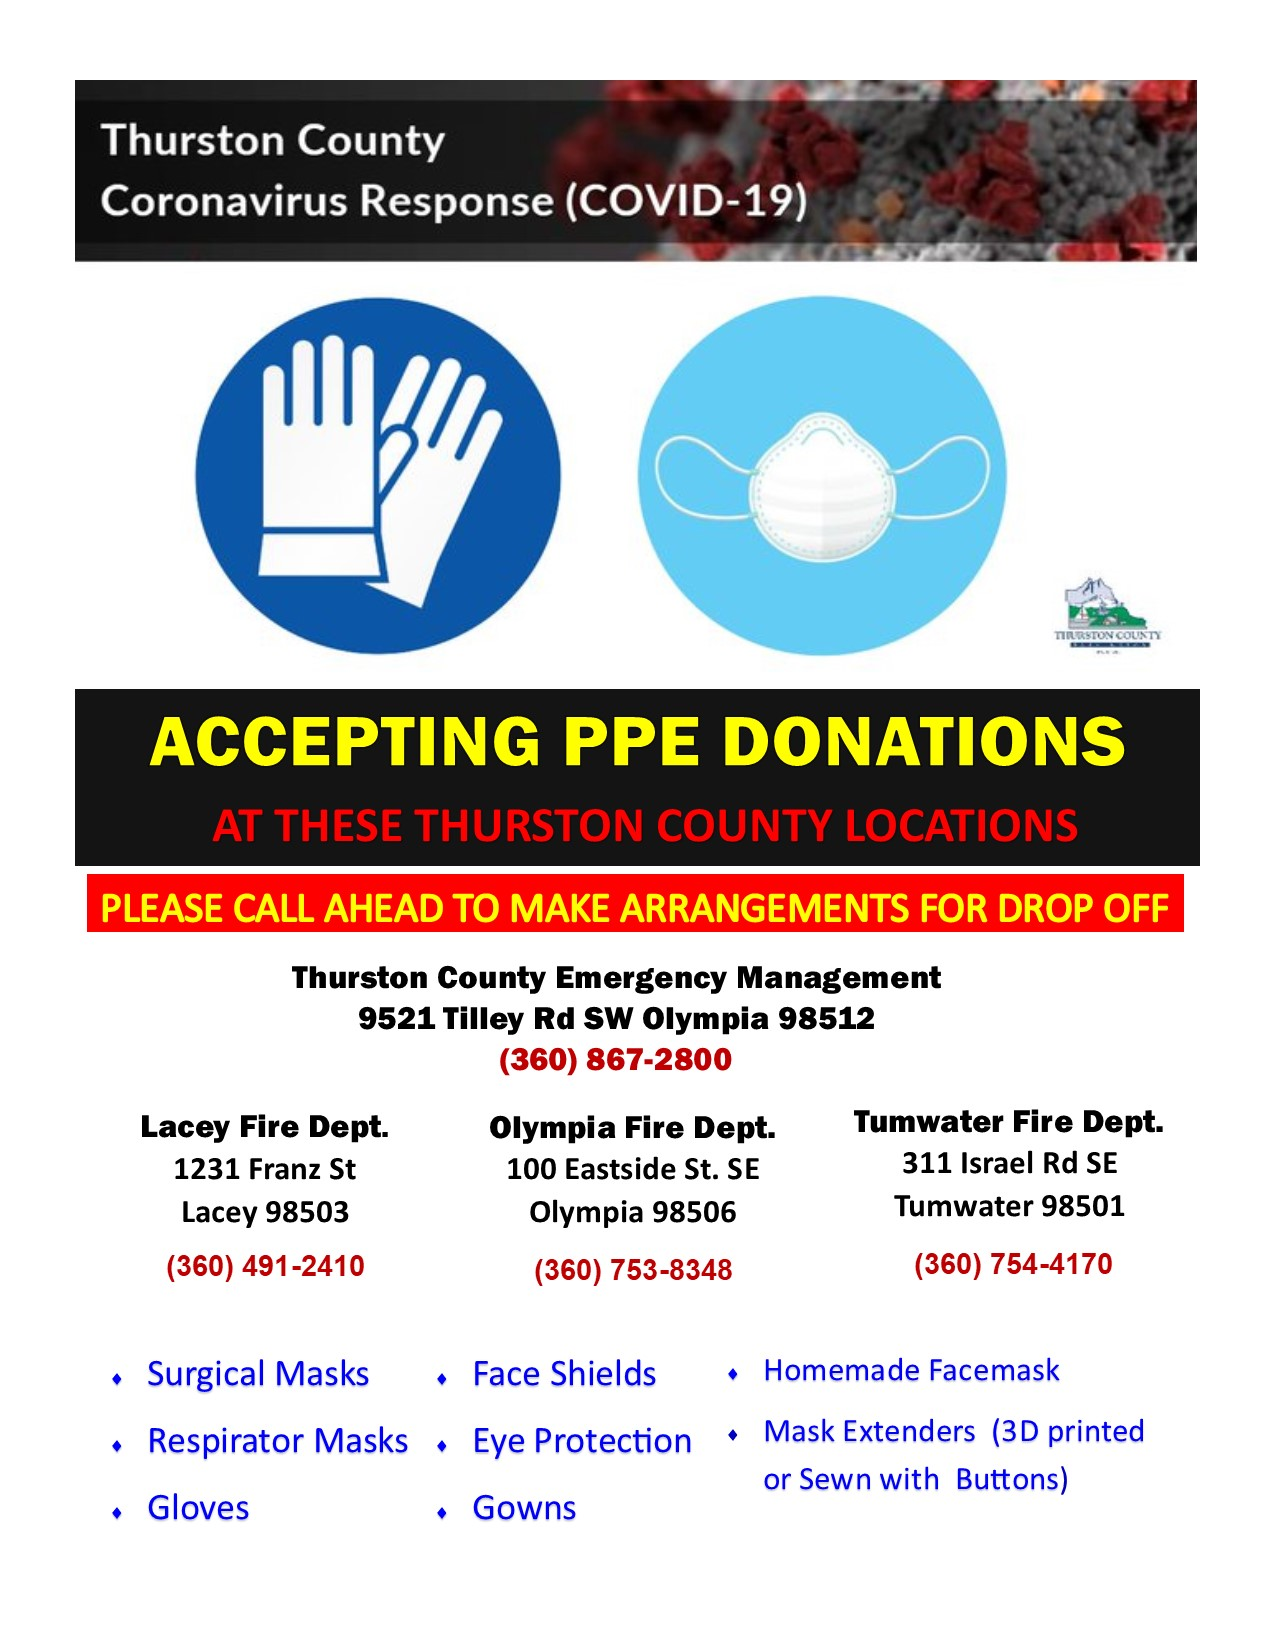 Soc. Med. PPE donations locations.jpg